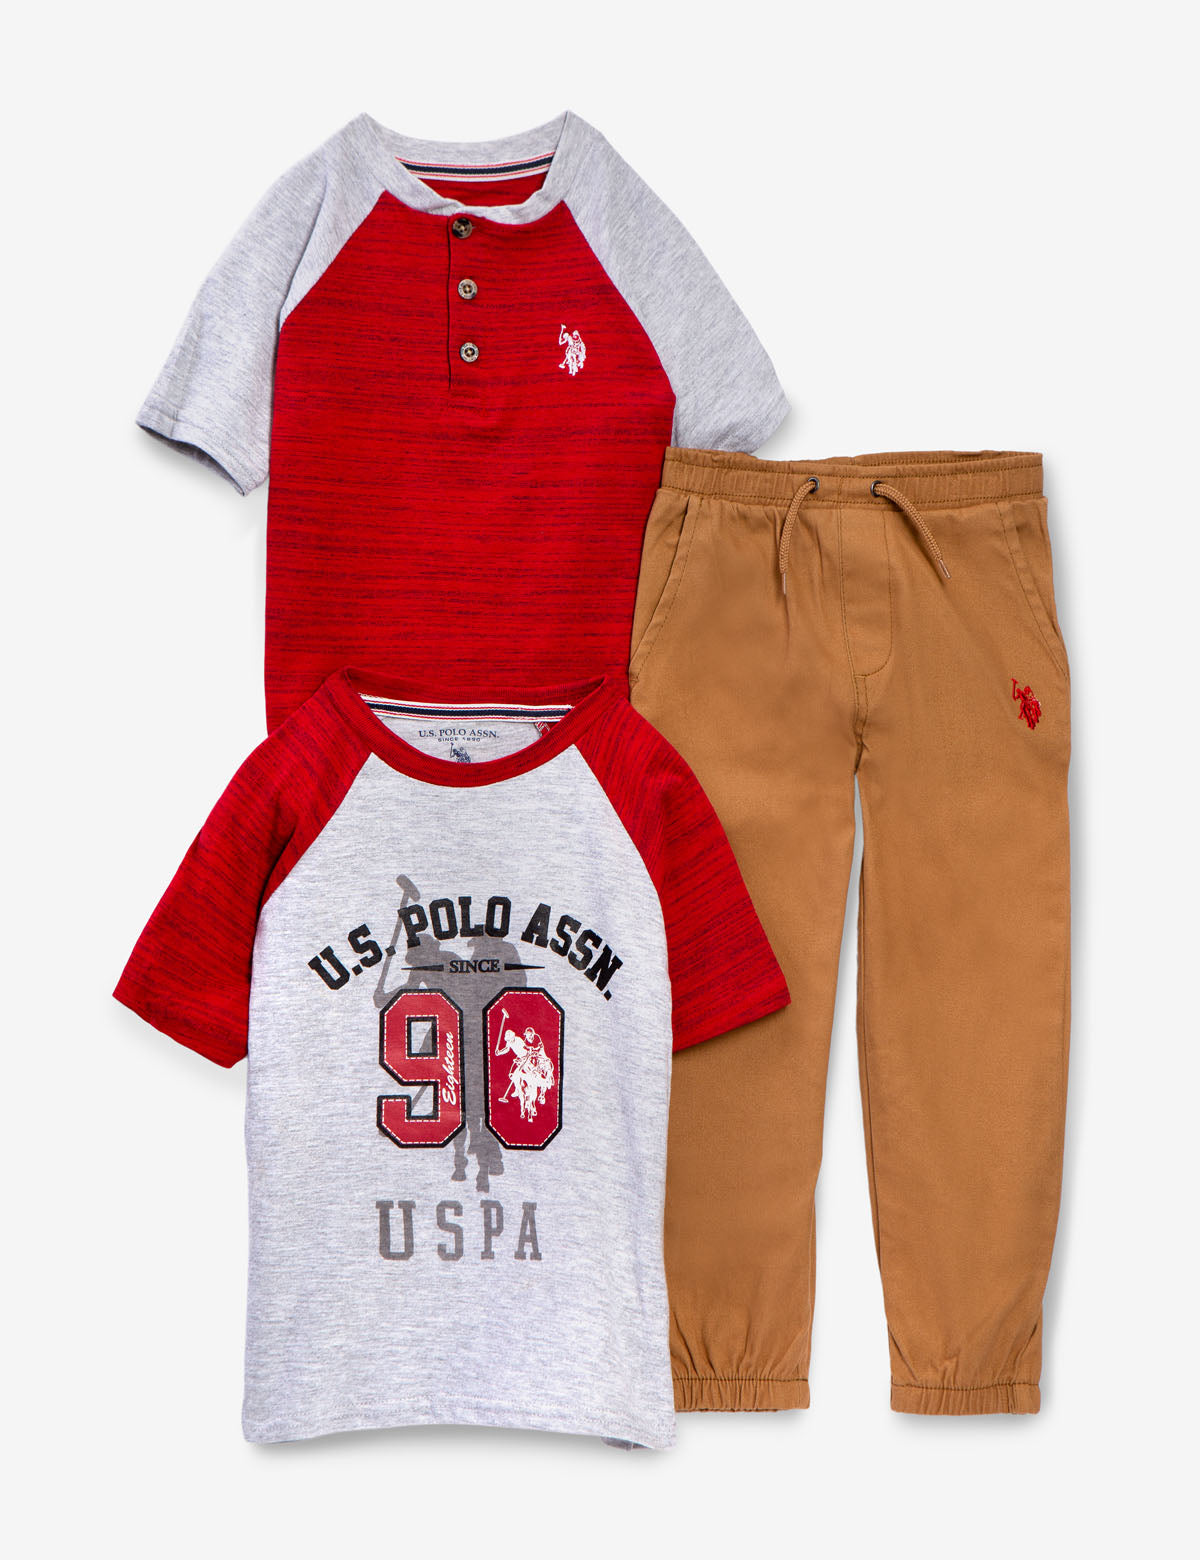 TODDLER BOYS 3 PIECE SET - TWO TEE-SHIRTS & JOGGERS